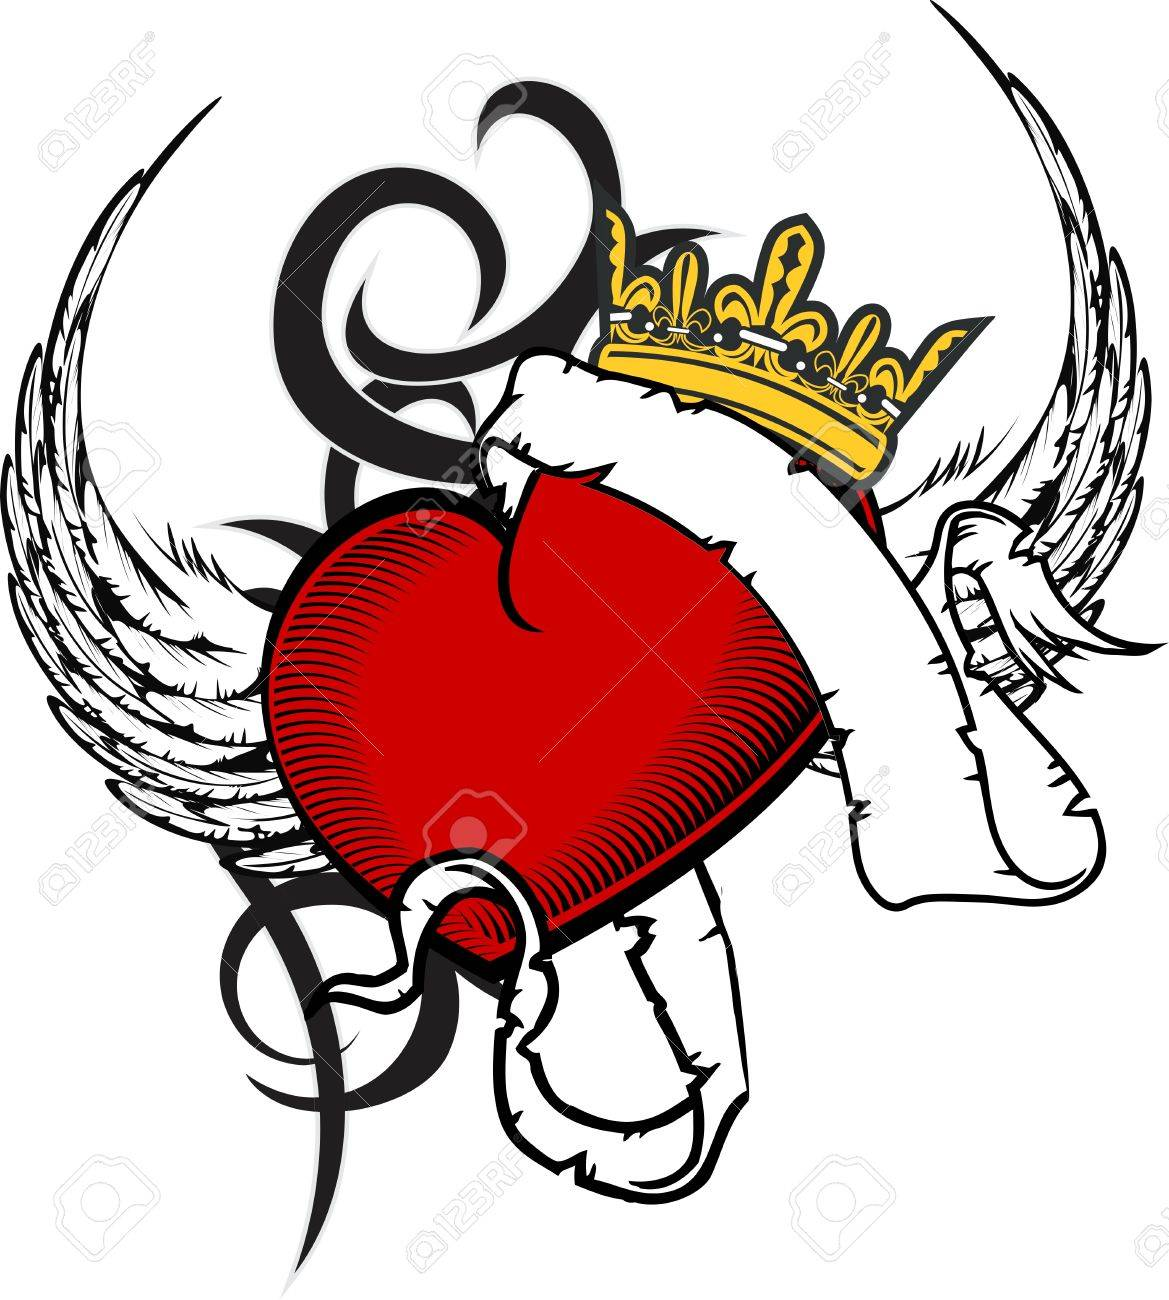 1169x1300 Heart Ribbon Tattoo In Format Very Easy To Edit Royalty Free